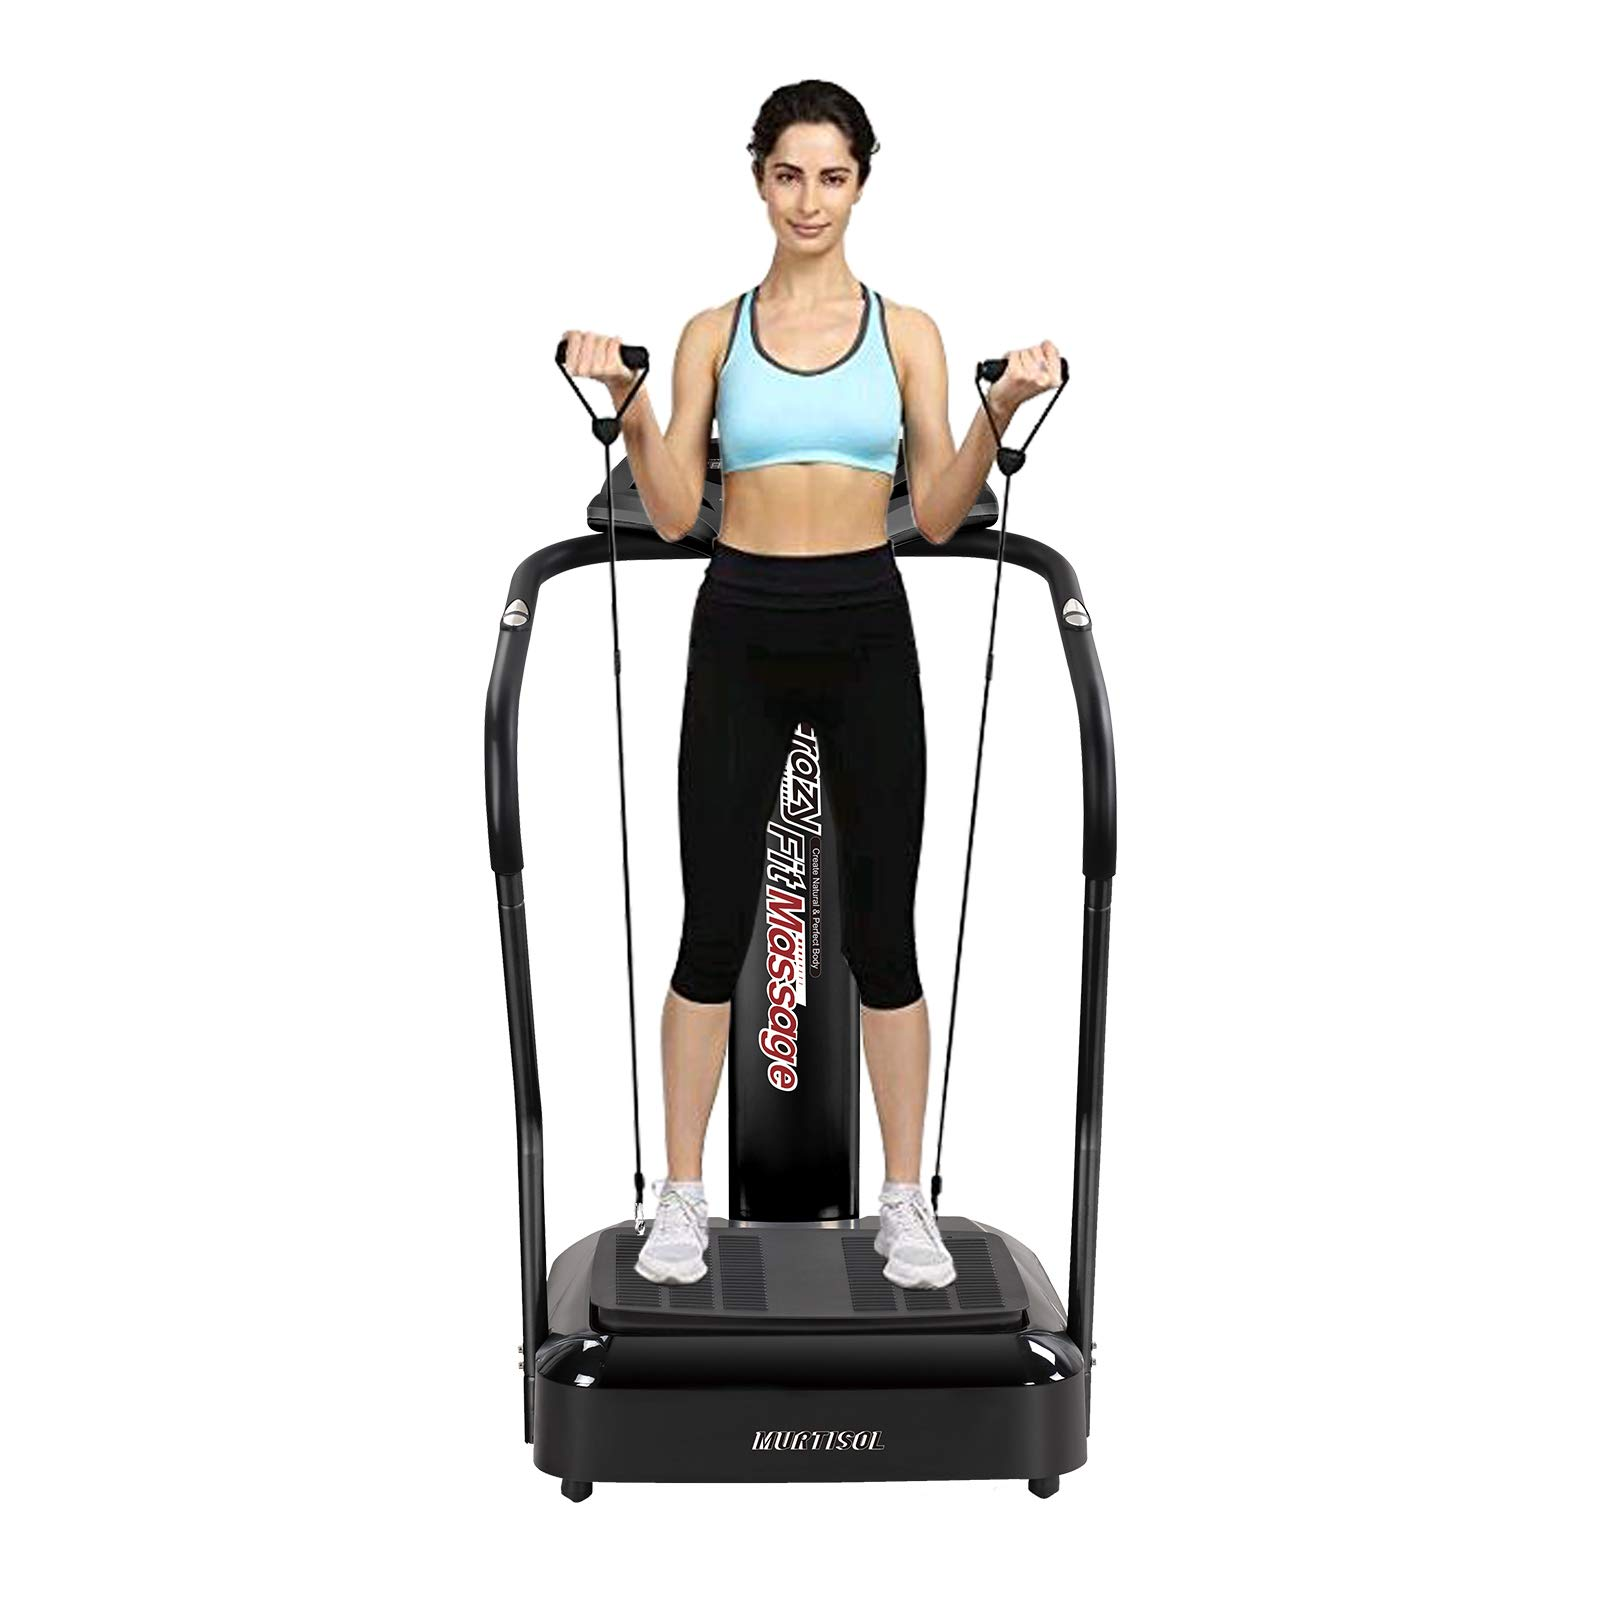 Murtisol Vibration Platform Power Plate with Heart Rate Grips,Whole Body Vibration Machine Massage Slim with Resistance Bands